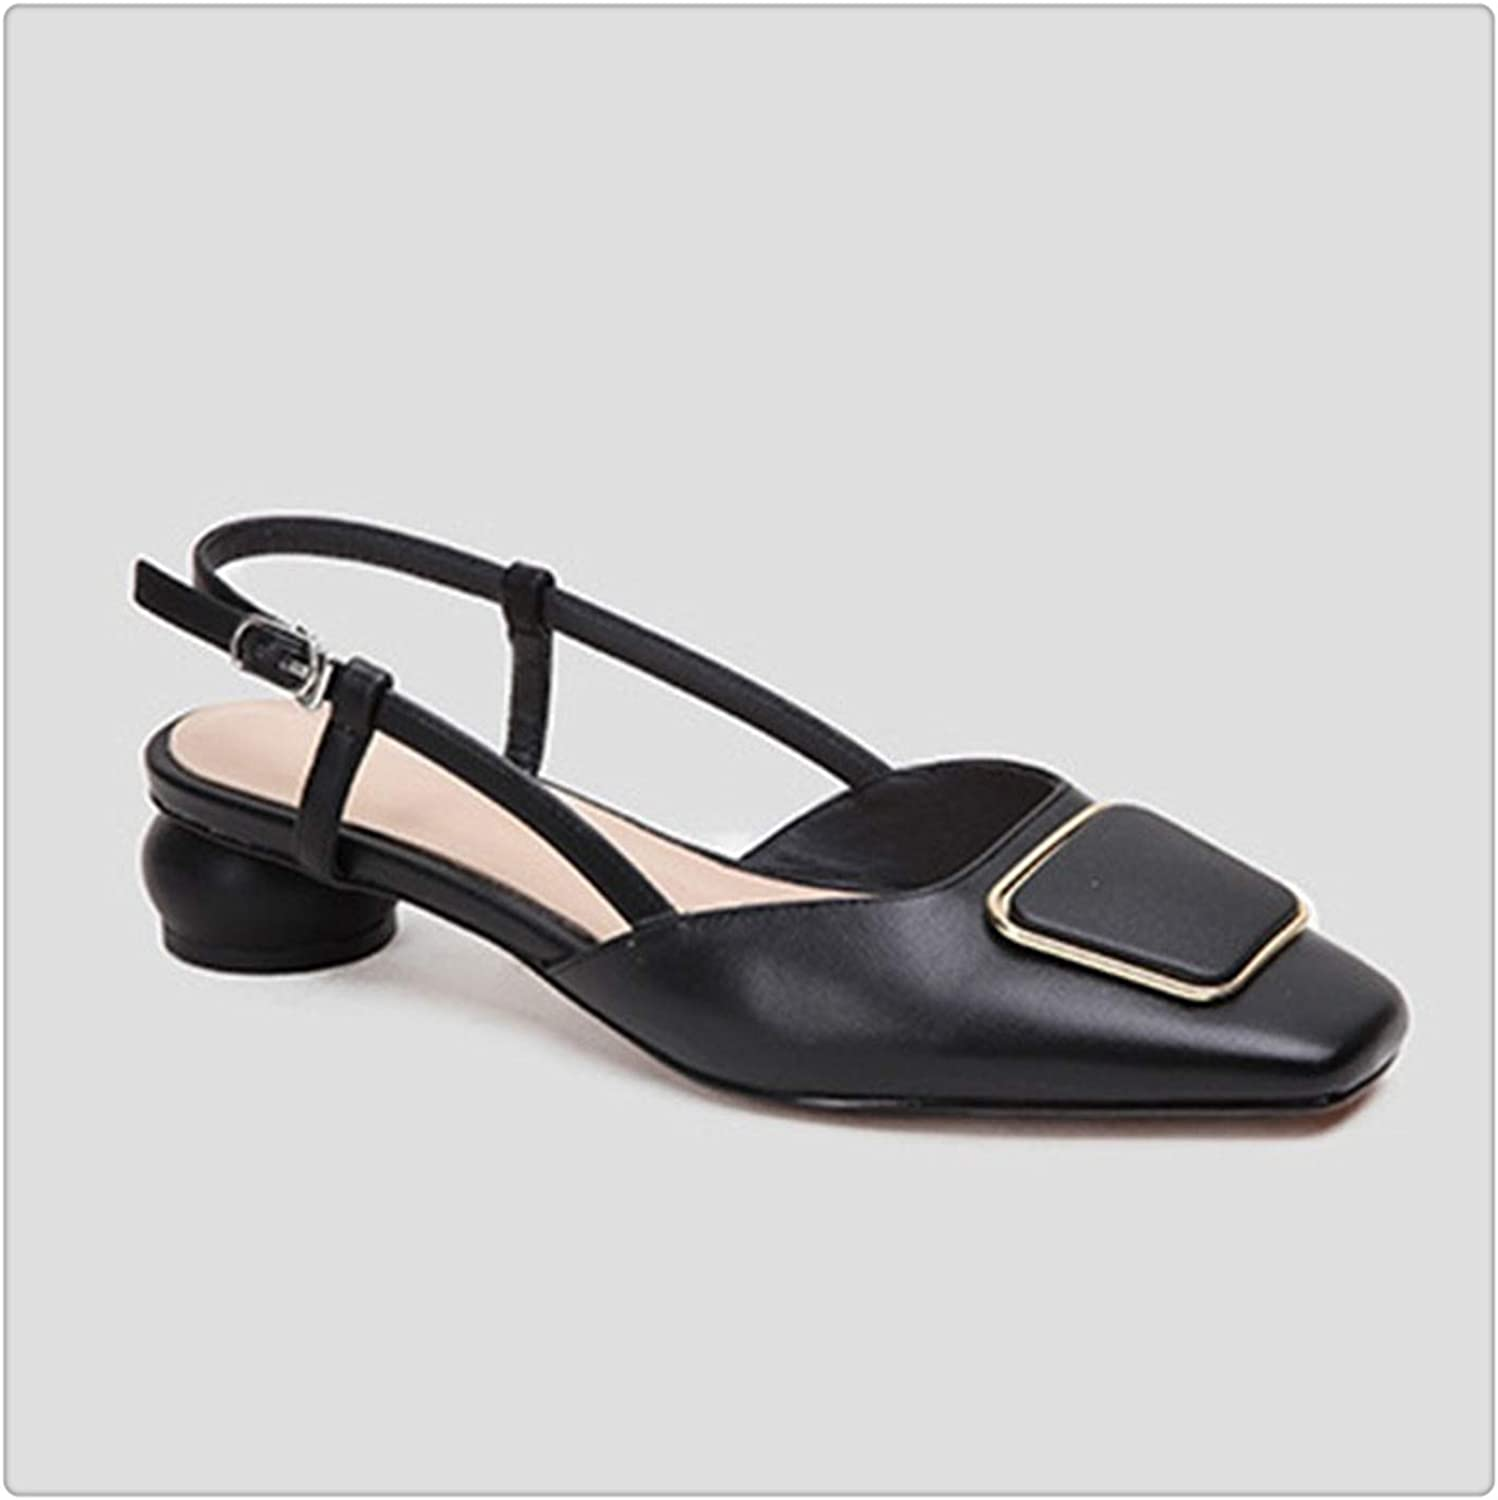 KKEPO& 2019 New Spring Summer Square Toe Shallow Pu Leather Buckle Strap StrangeHigh Heels Sandals Women Fashion Tide 10SJ460 Black 38